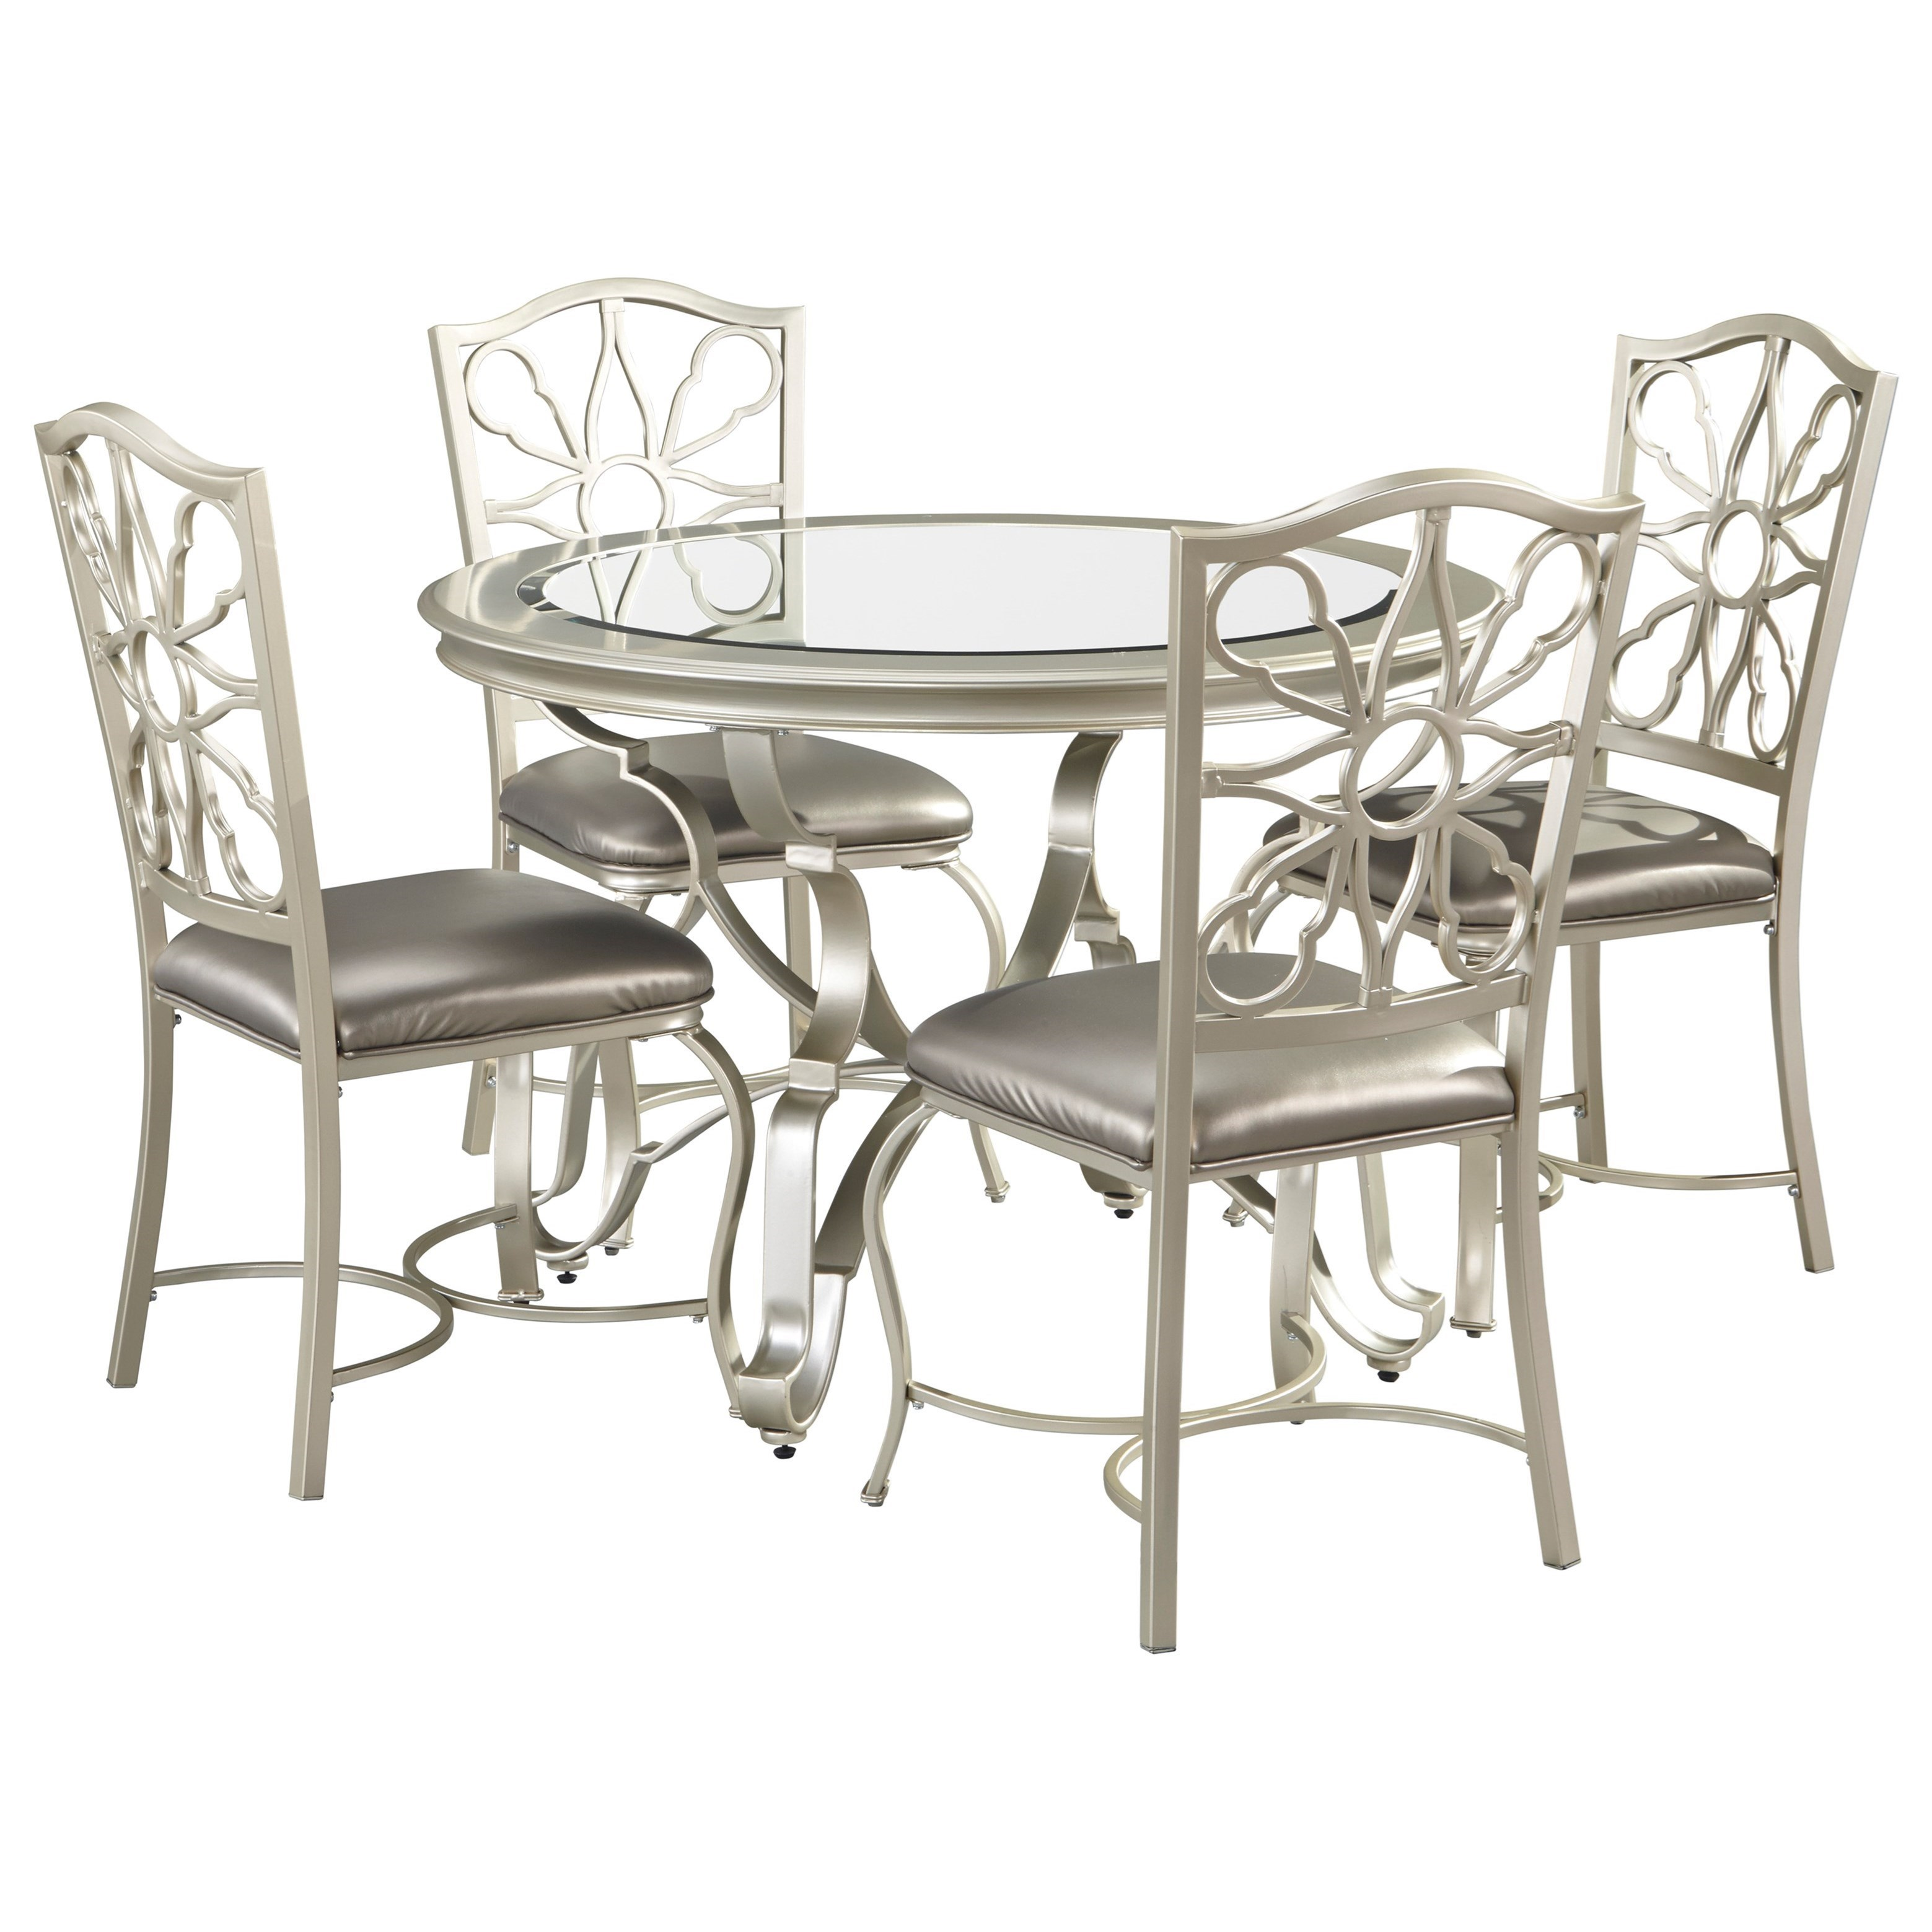 Signature Design by Ashley Shollyn5-Piece Dining Table Set ...  sc 1 st  Furniture and ApplianceMart & Signature Design by Ashley Shollyn 5-Piece Dining Table Set in ...